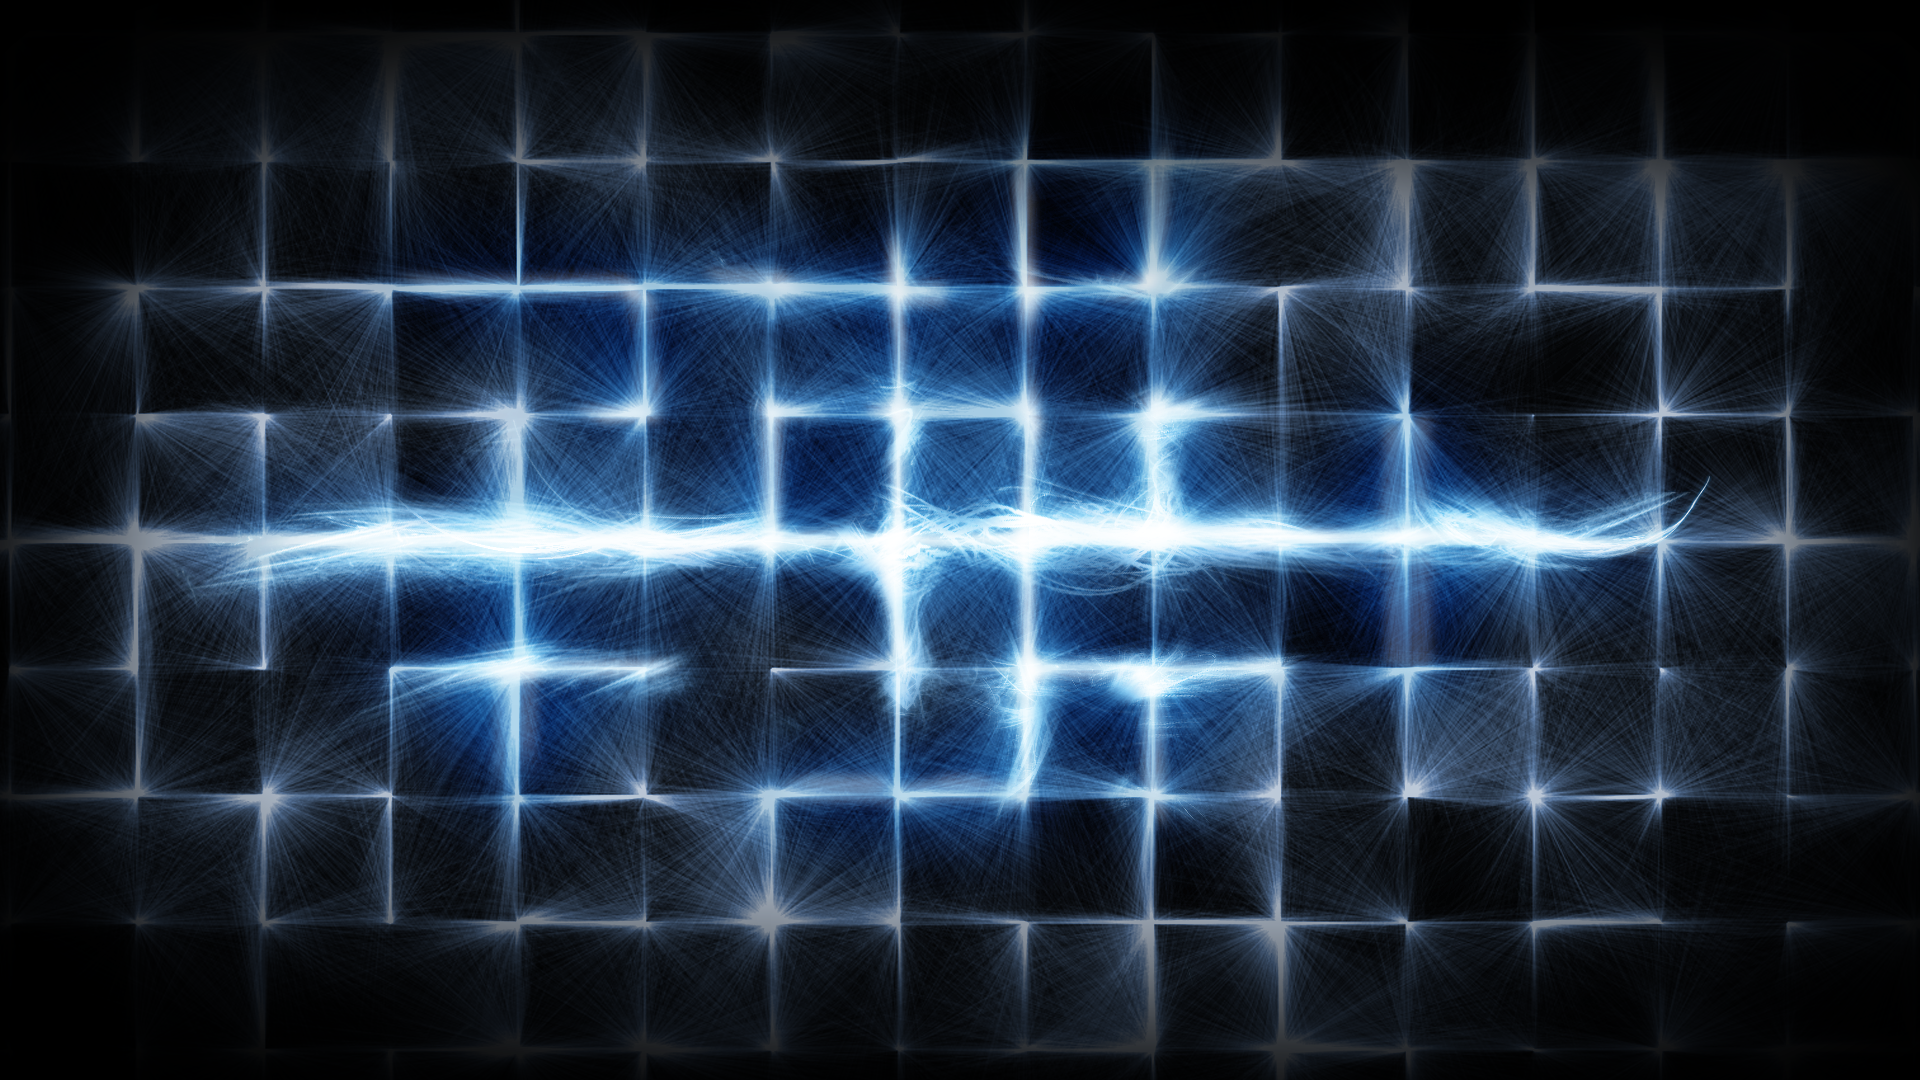 Grid Wallpaper Desktop #h27029748, 2552.16 Kb